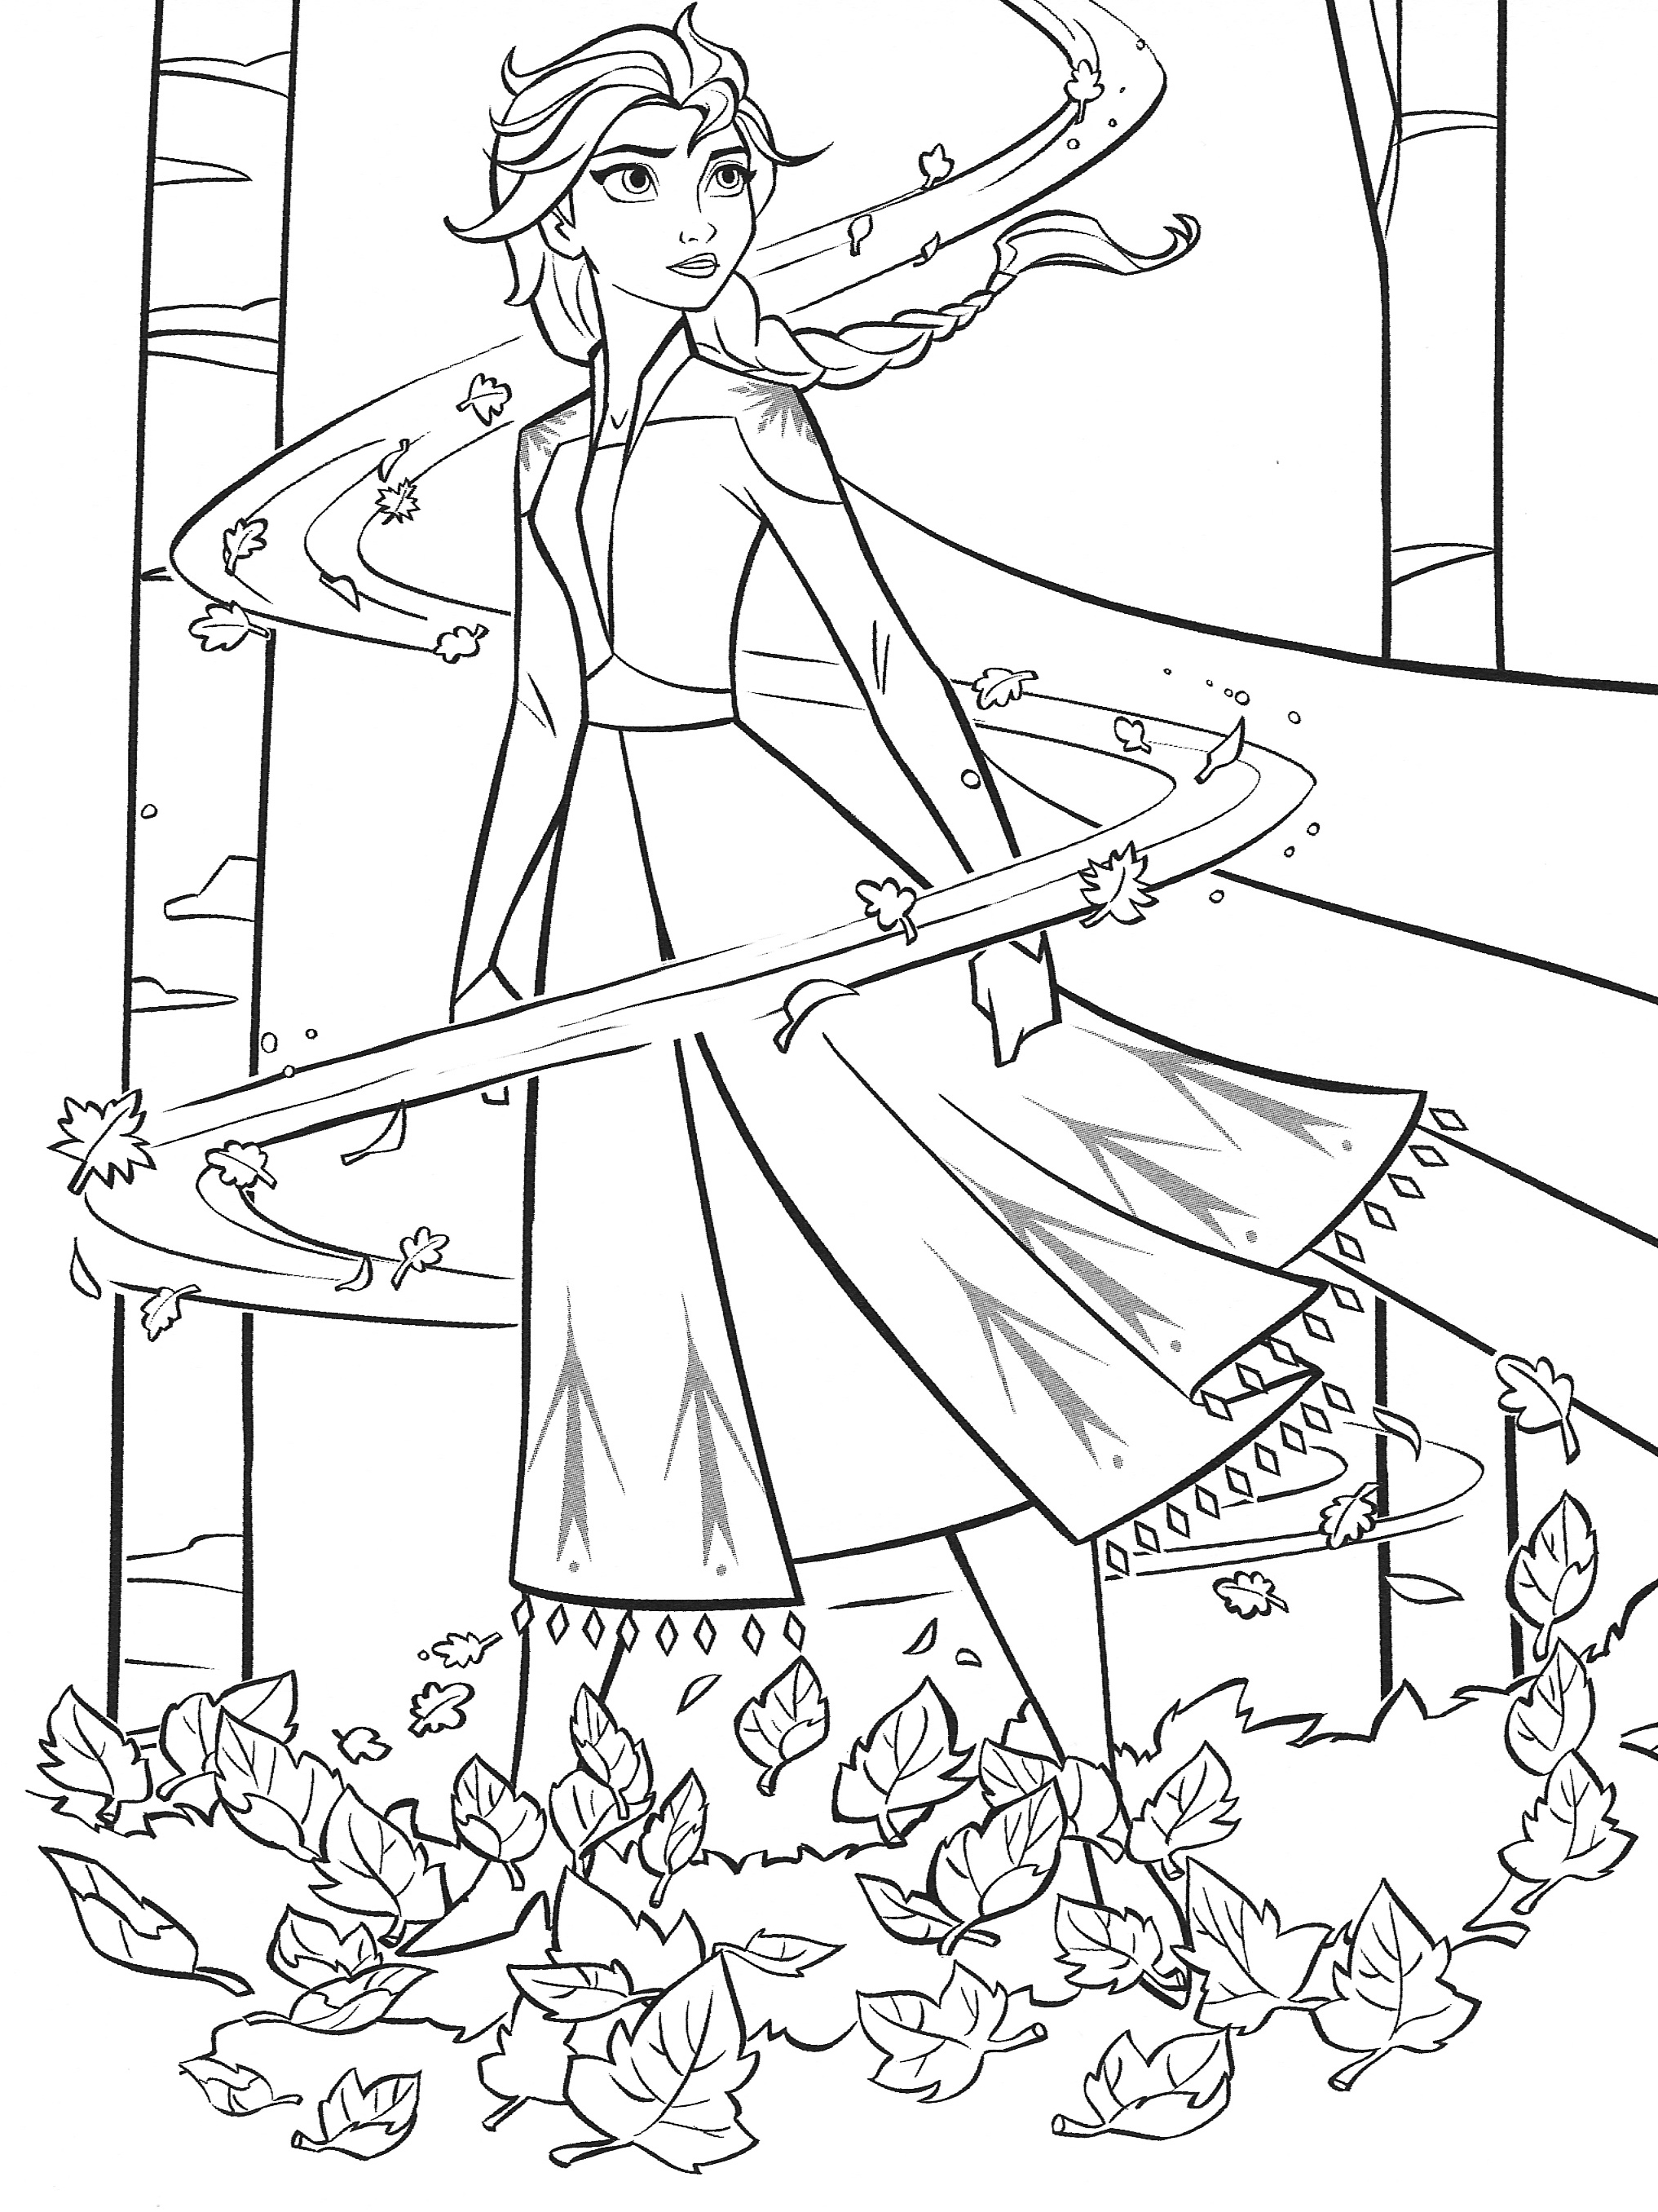 frozen movie coloring pages frozen coloring pages disney coloring book movie coloring pages frozen